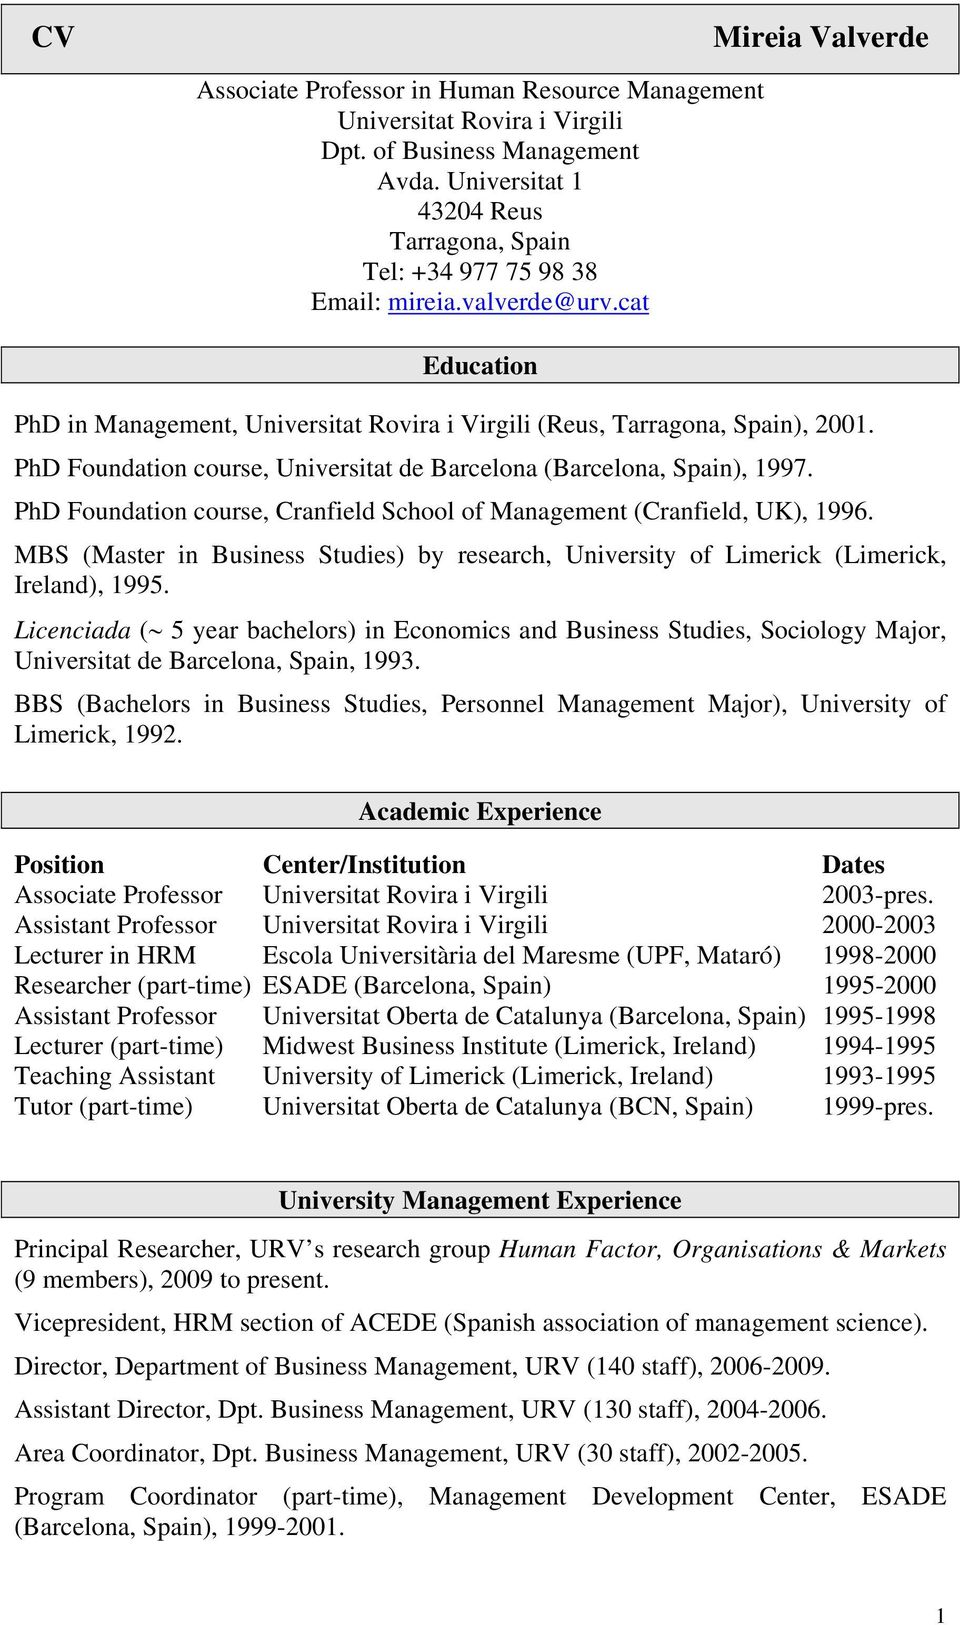 PhD Foundation course, Cranfield School of Management (Cranfield, UK), 1996. MBS (Master in Business Studies) by research, University of Limerick (Limerick, Ireland), 1995.